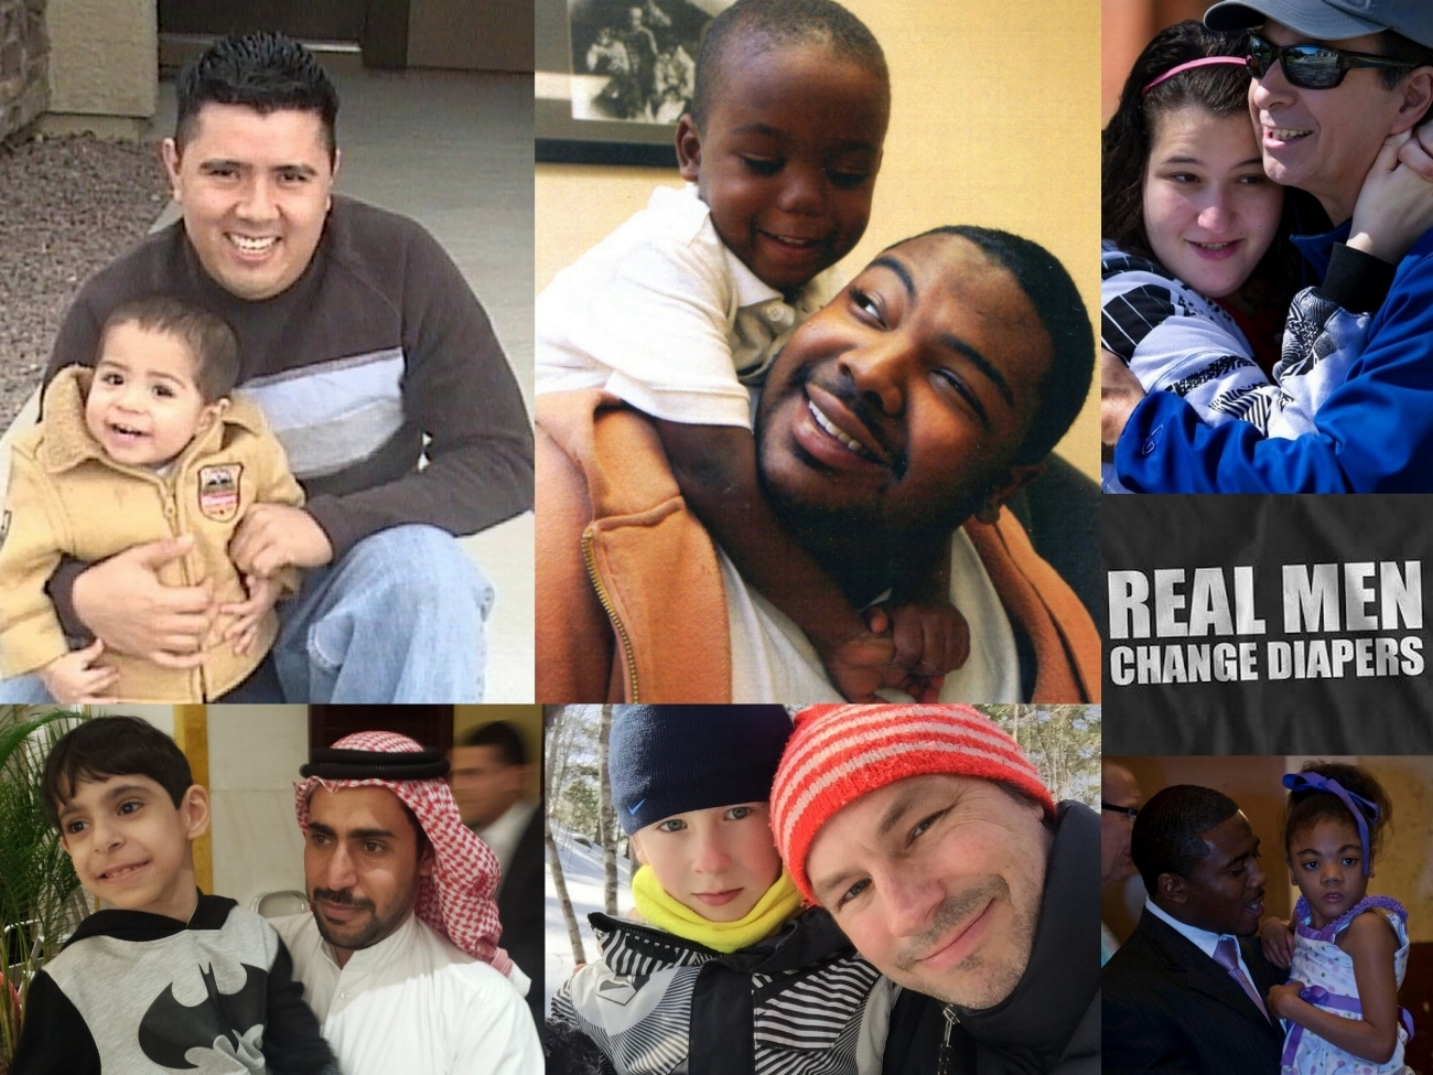 Involved fathers making a difference